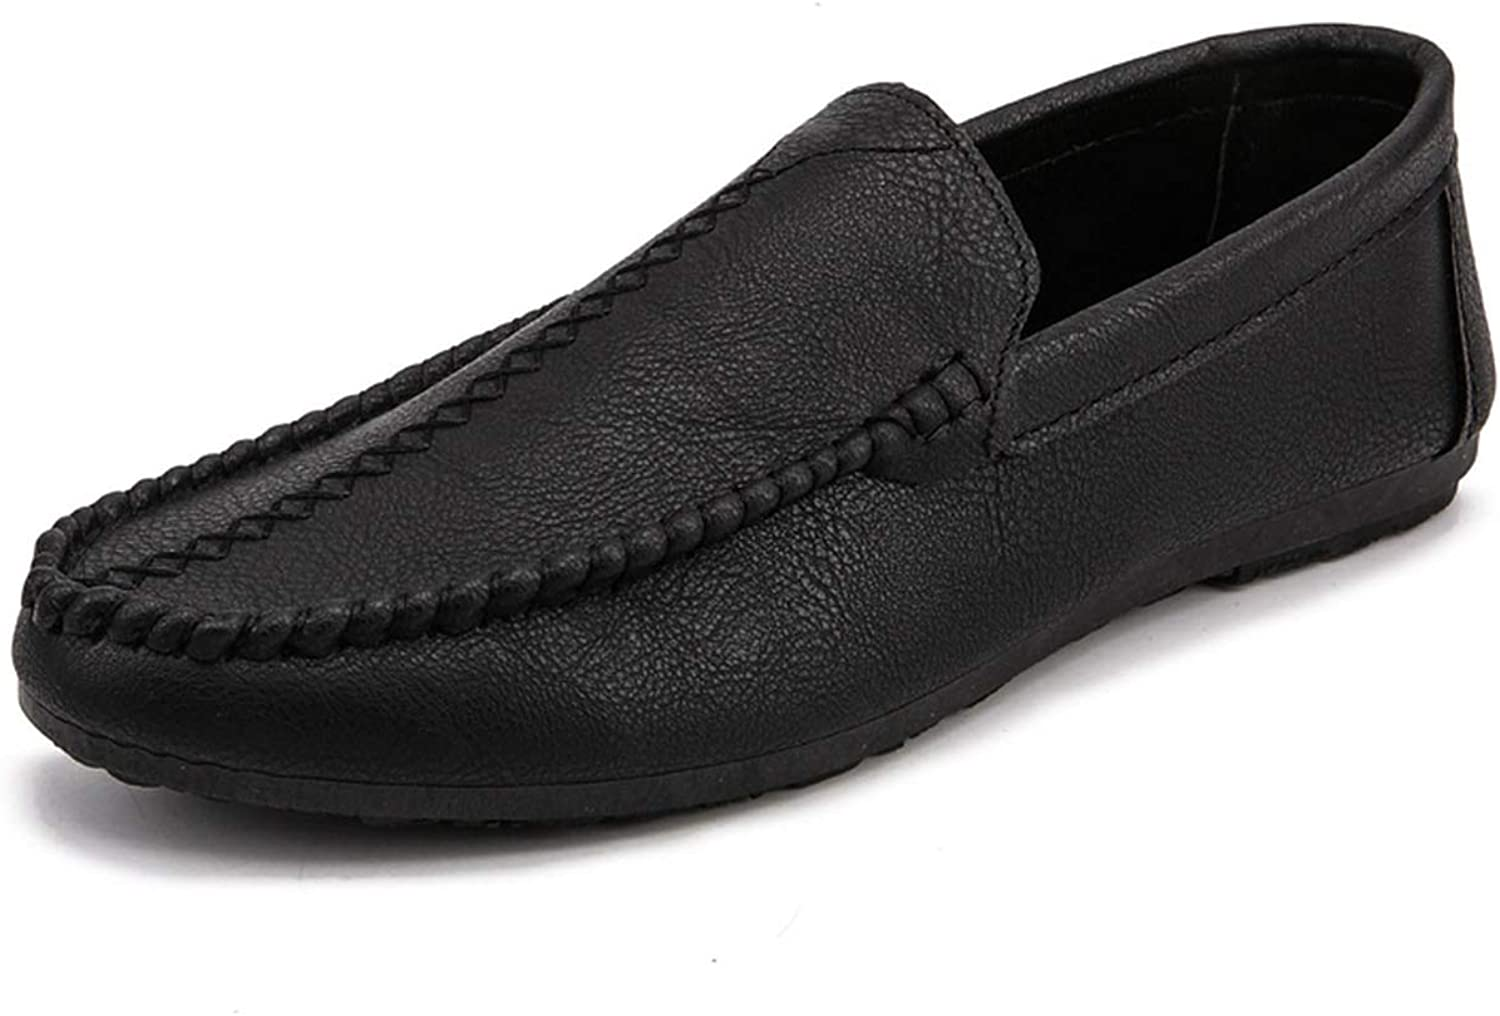 Pleasantlyday Men's Breathable Leather Loafers shoes Autumn Slip On Drive Peas shoes Size39-44